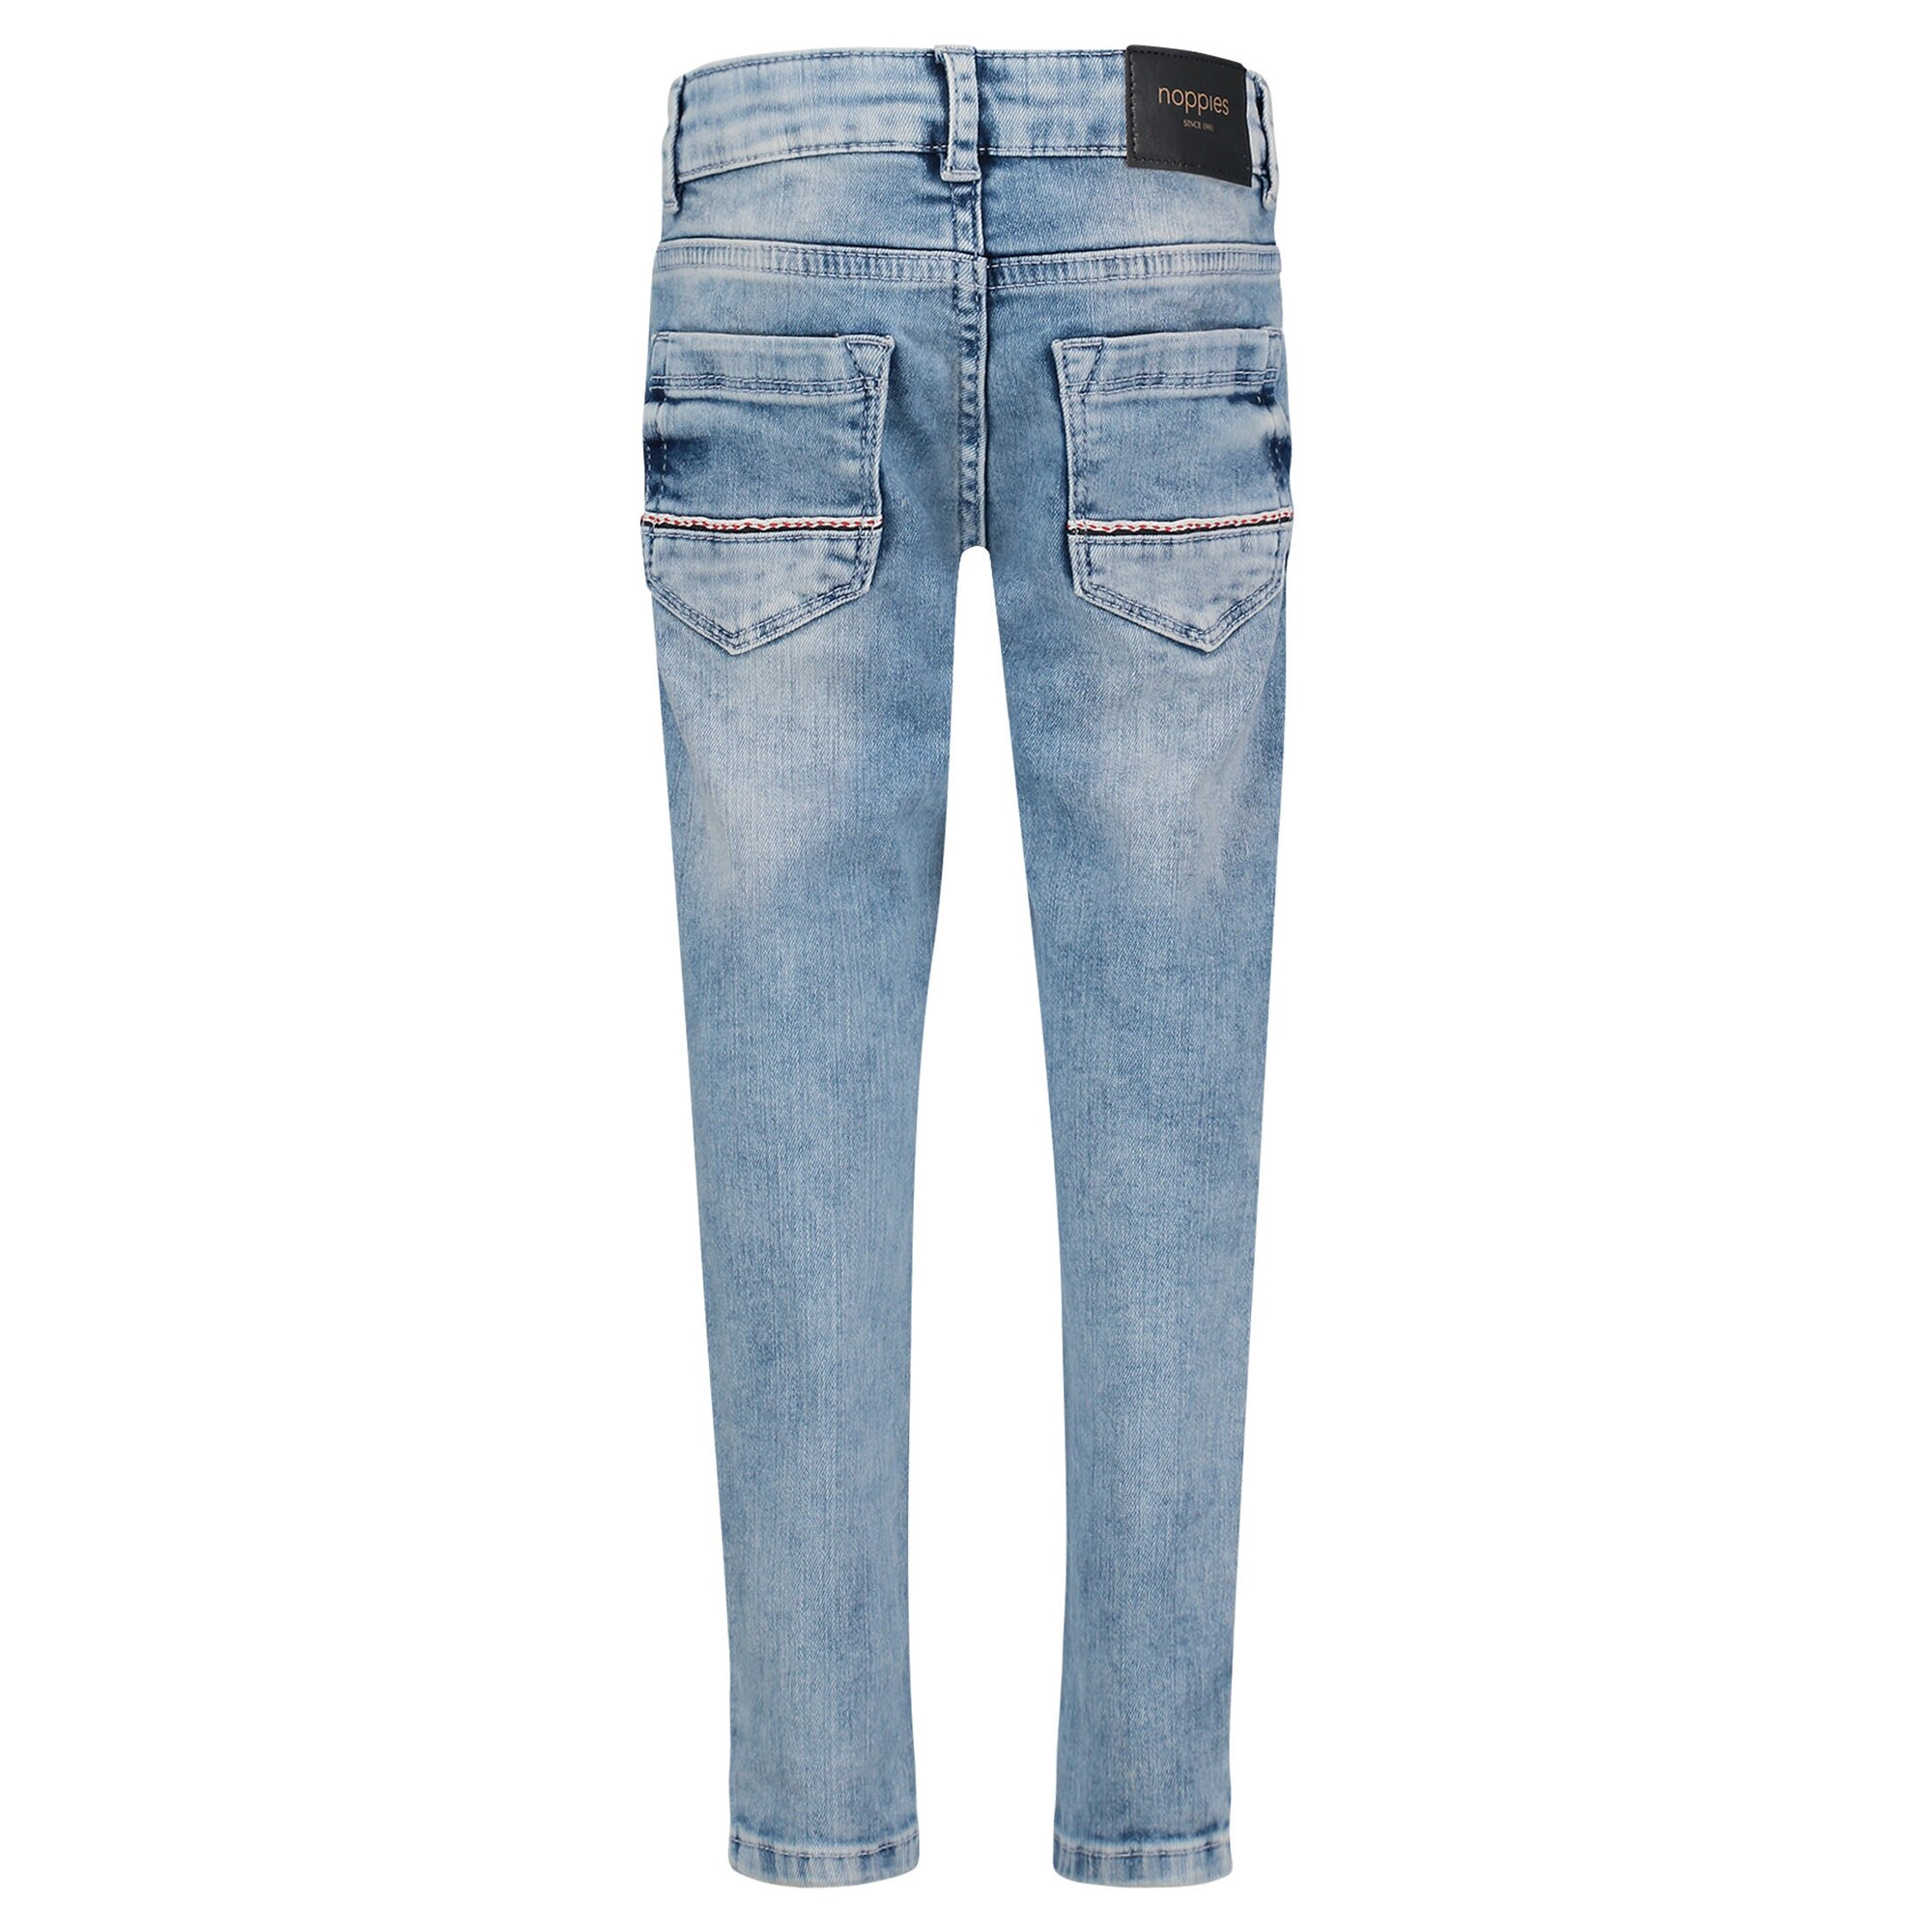 noppies-jeans-royal